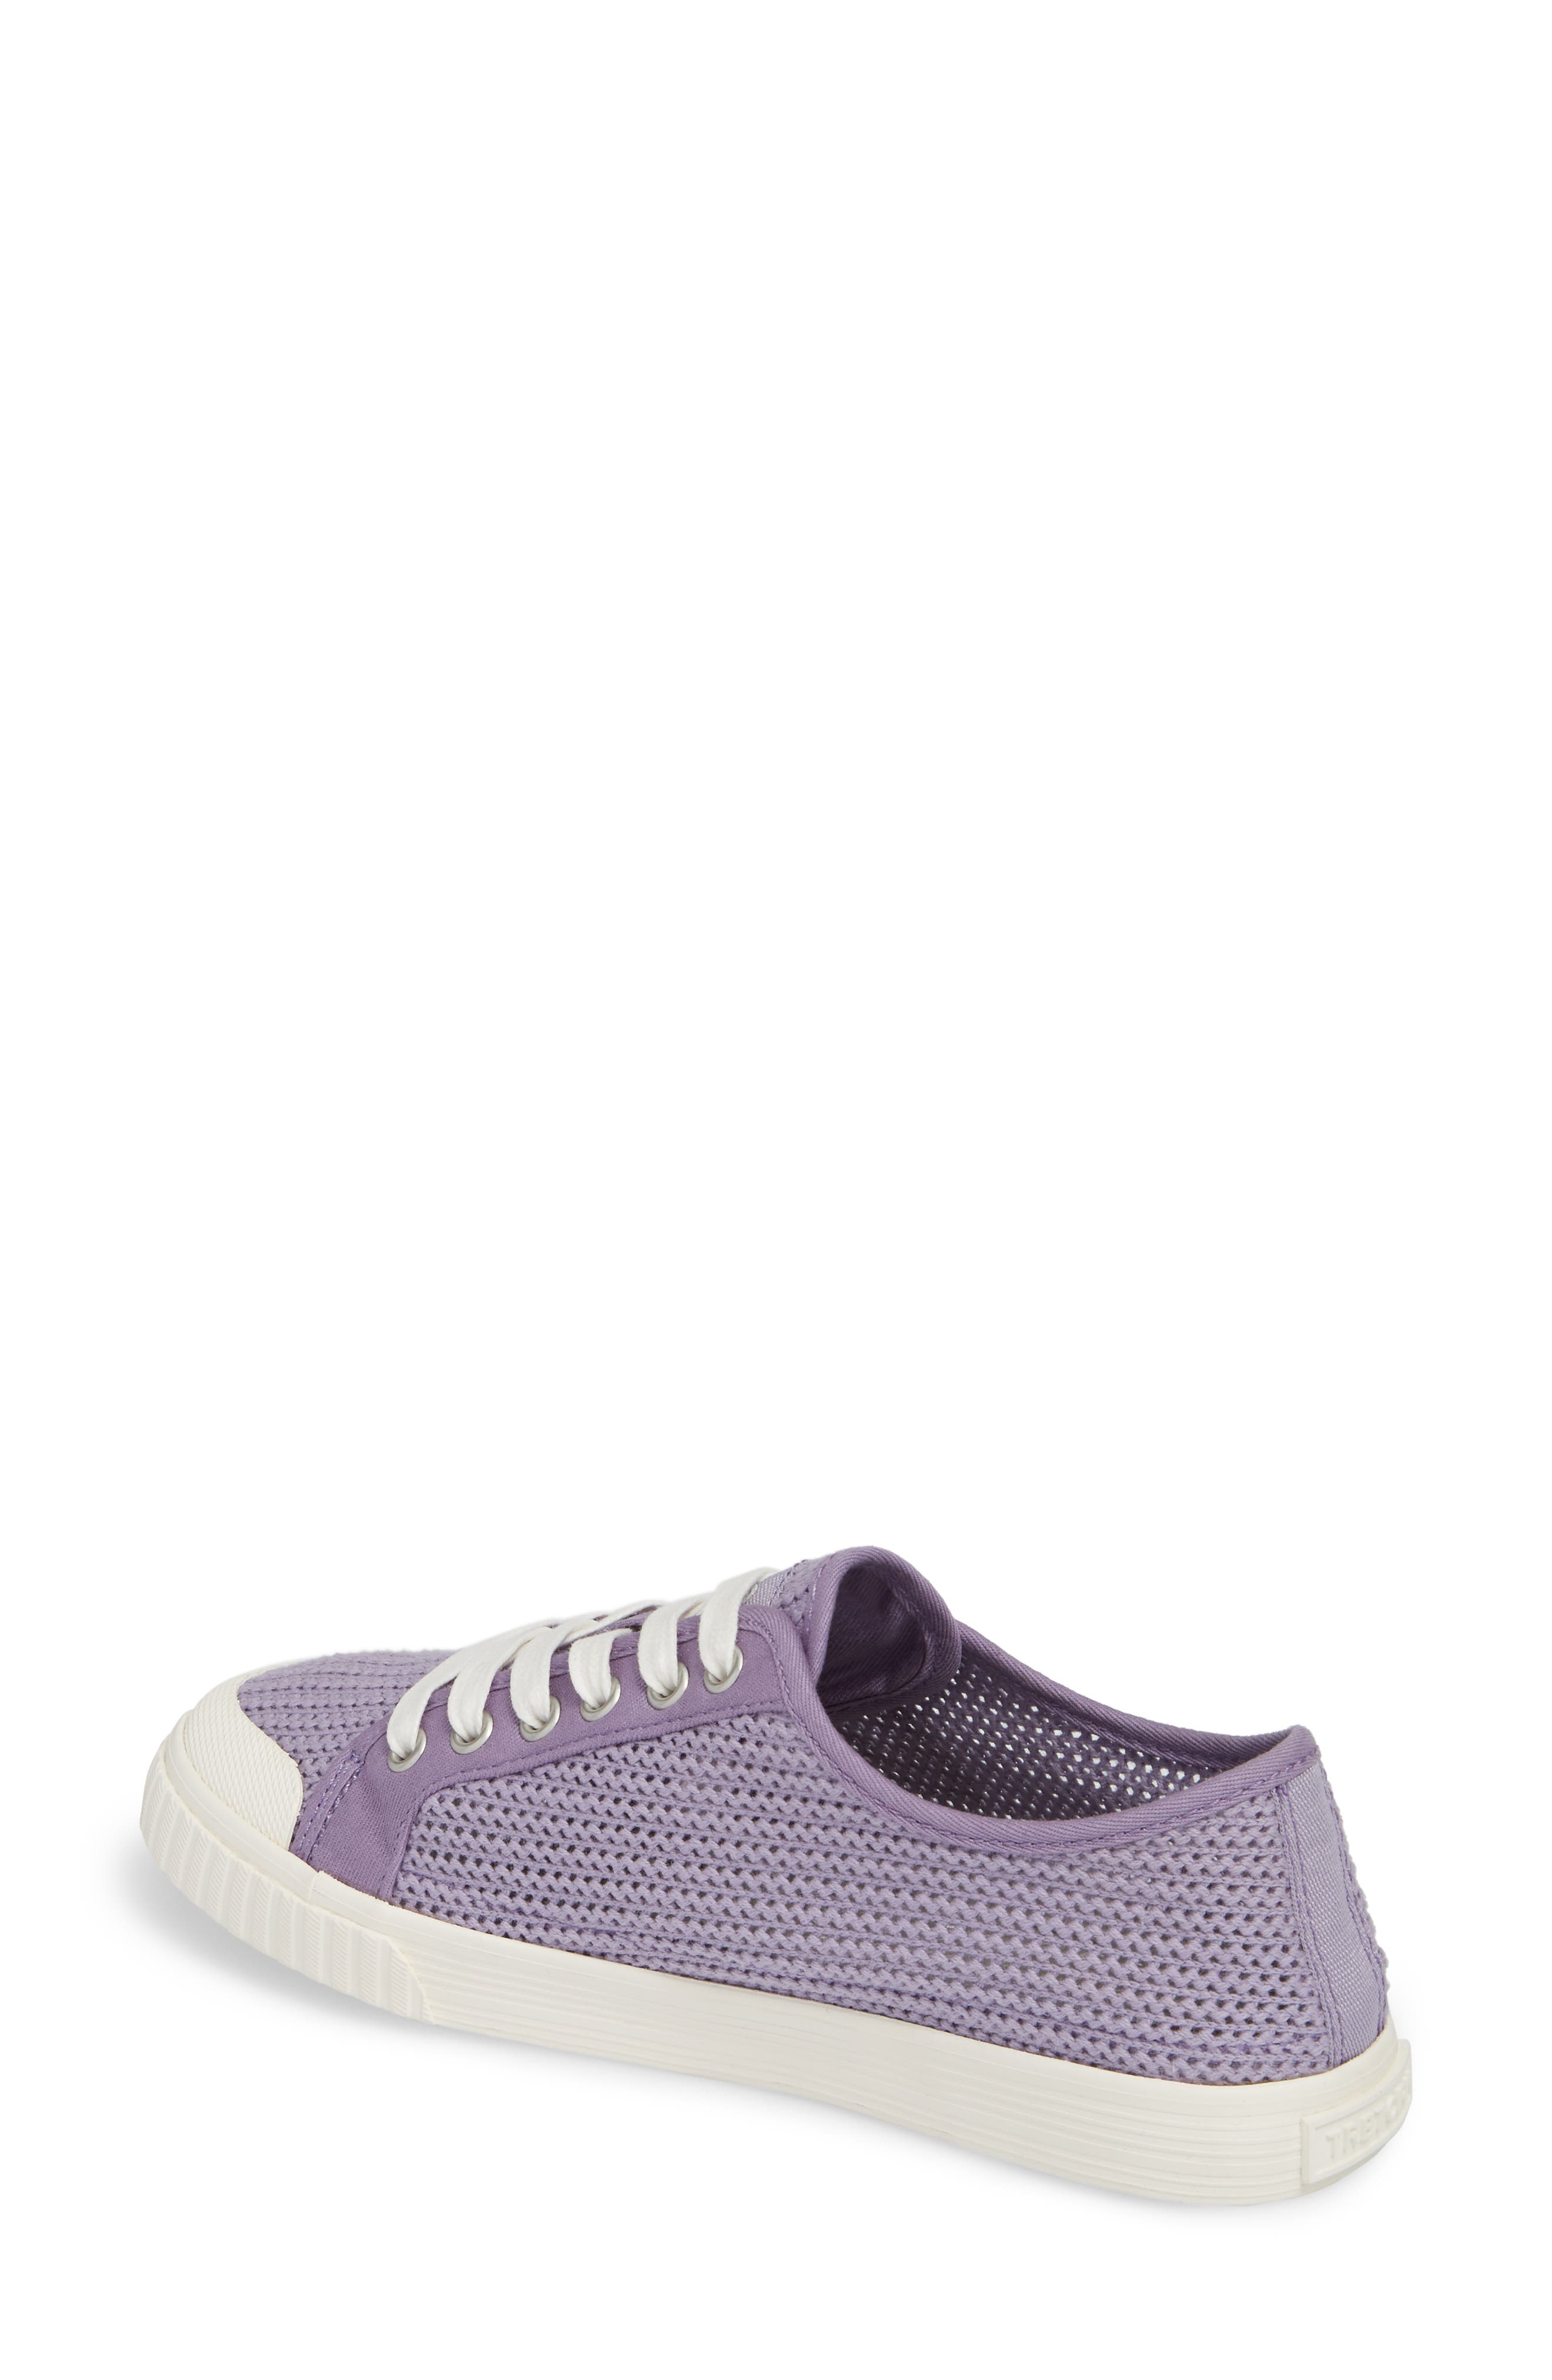 'Tournament Net' Sneaker,                             Alternate thumbnail 2, color,                             Lavender Cotton Mesh